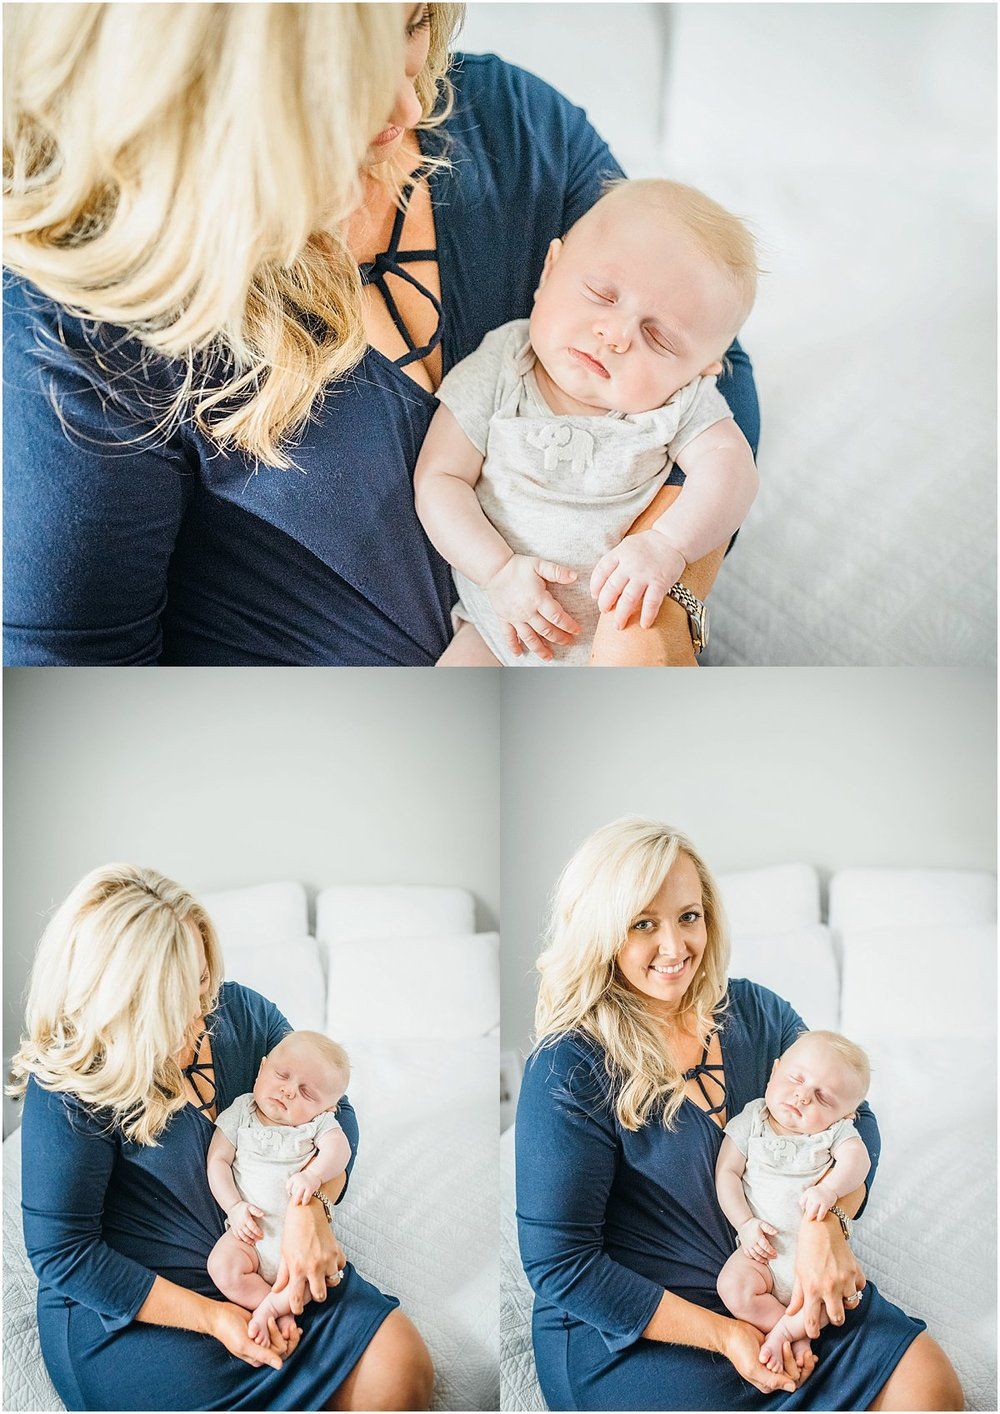 Ashley_Rogers_Photography_Orlando_Non-Posed_Newborn_Family_Lifestyle_Photographer_0872.jpg